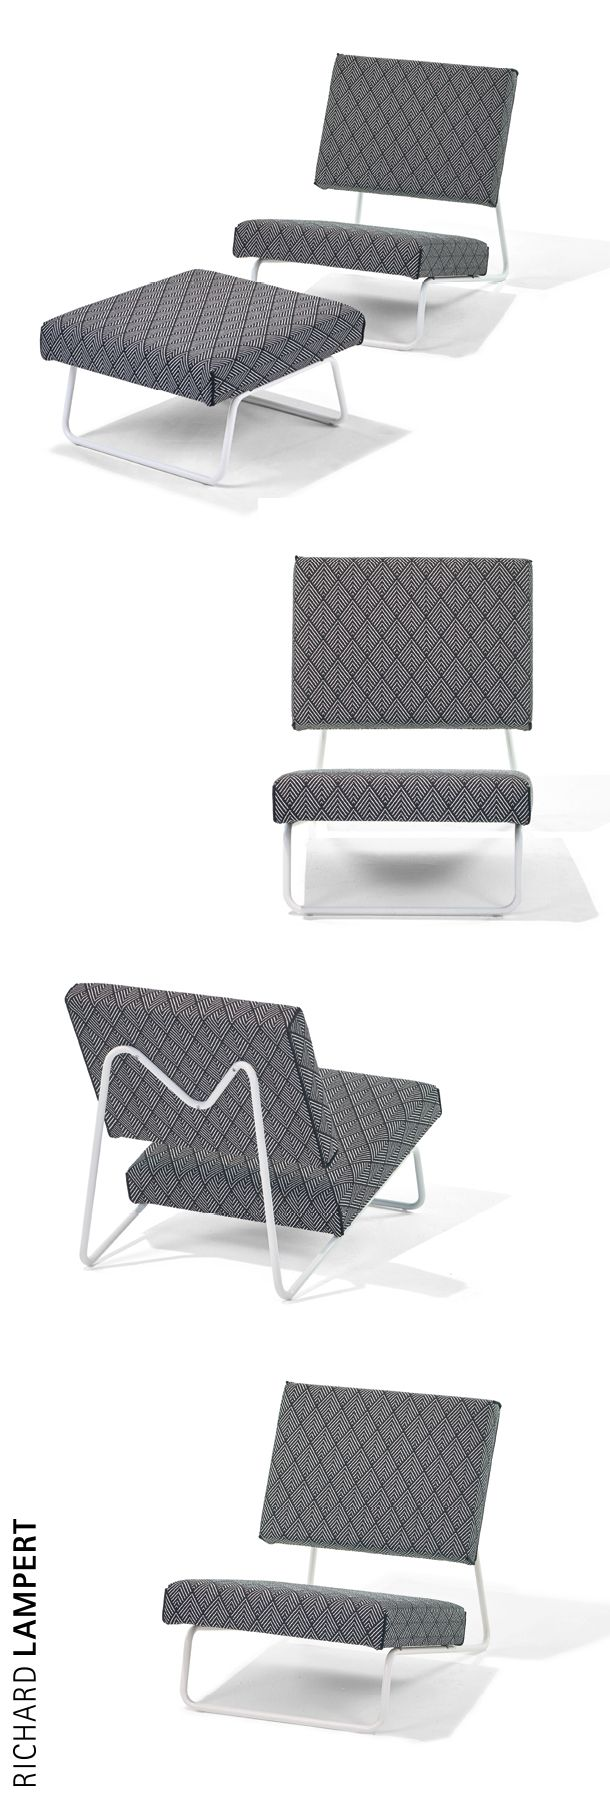 Lounge feeling outdoors – ›LOUNGE CHAIR OUTDOOR‹ by Herbert Hirche